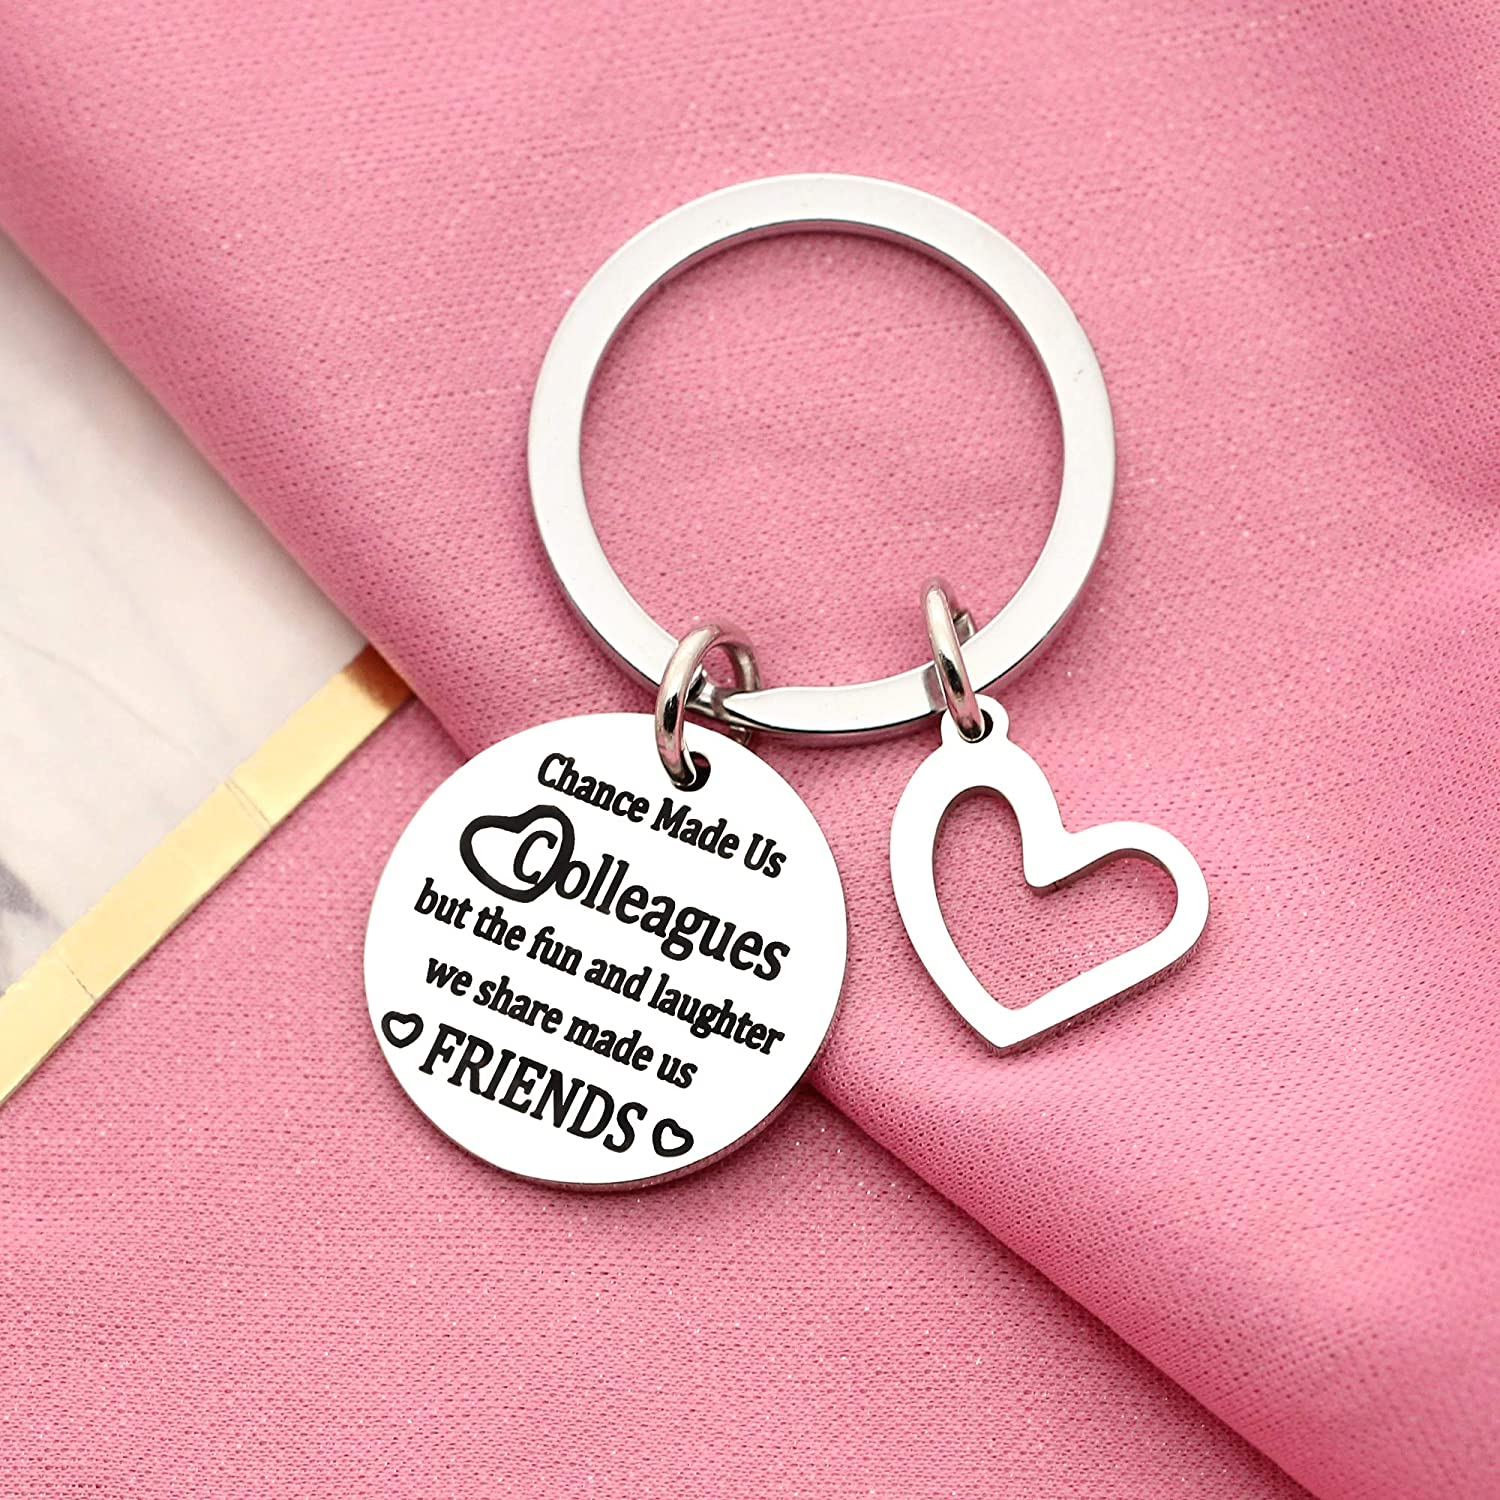 Friends Keyring Friendship Gifts Colleague Thank You Gift Coworker Gift Coworker Appreciation Work Friend Gift